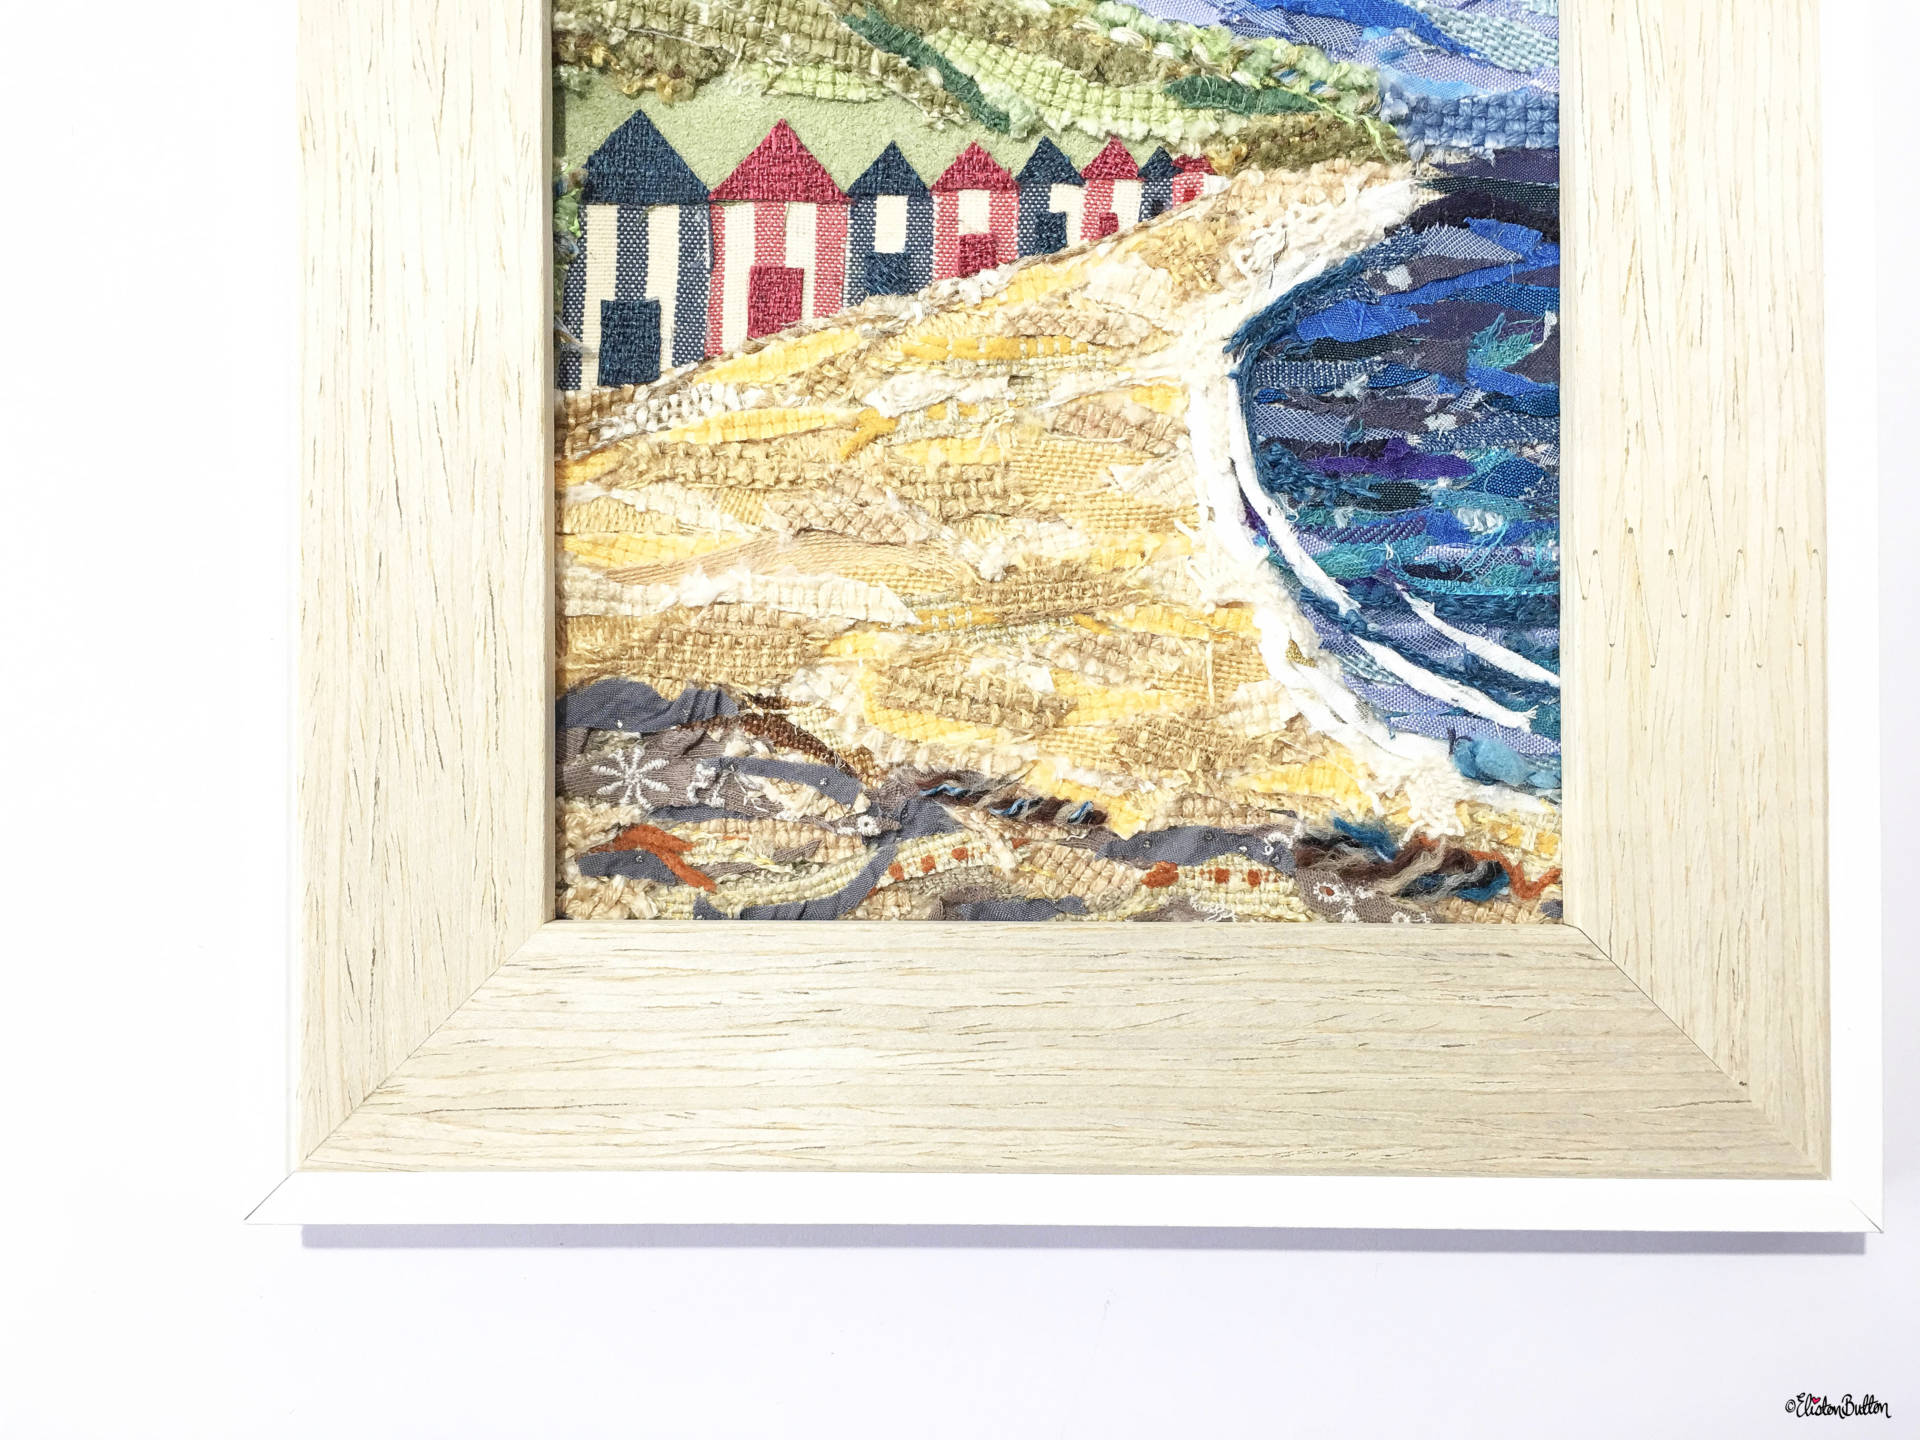 Original 'Beach Huts by the Sea' Original Seaside Fabric Collage by Eliston Button - Frame Close Up - Create 30 – No. 16 & 17 – Seaside Fabric Collages at www.elistonbutton.com - Eliston Button - That Crafty Kid – Art, Design, Craft & Adventure.